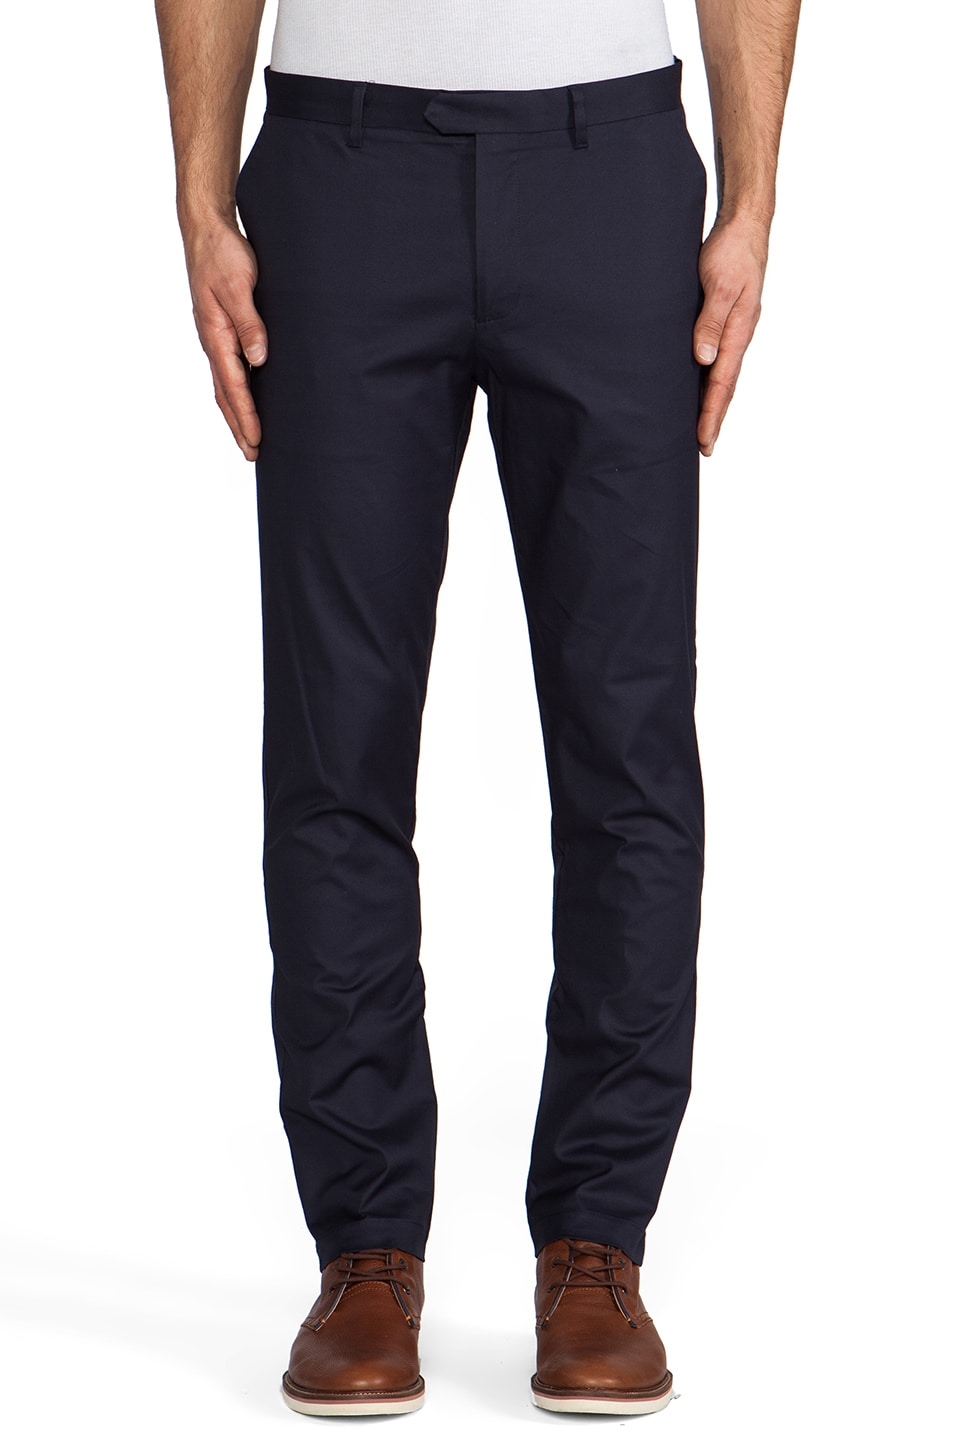 Scotch & Soda Dress Pant in Navy